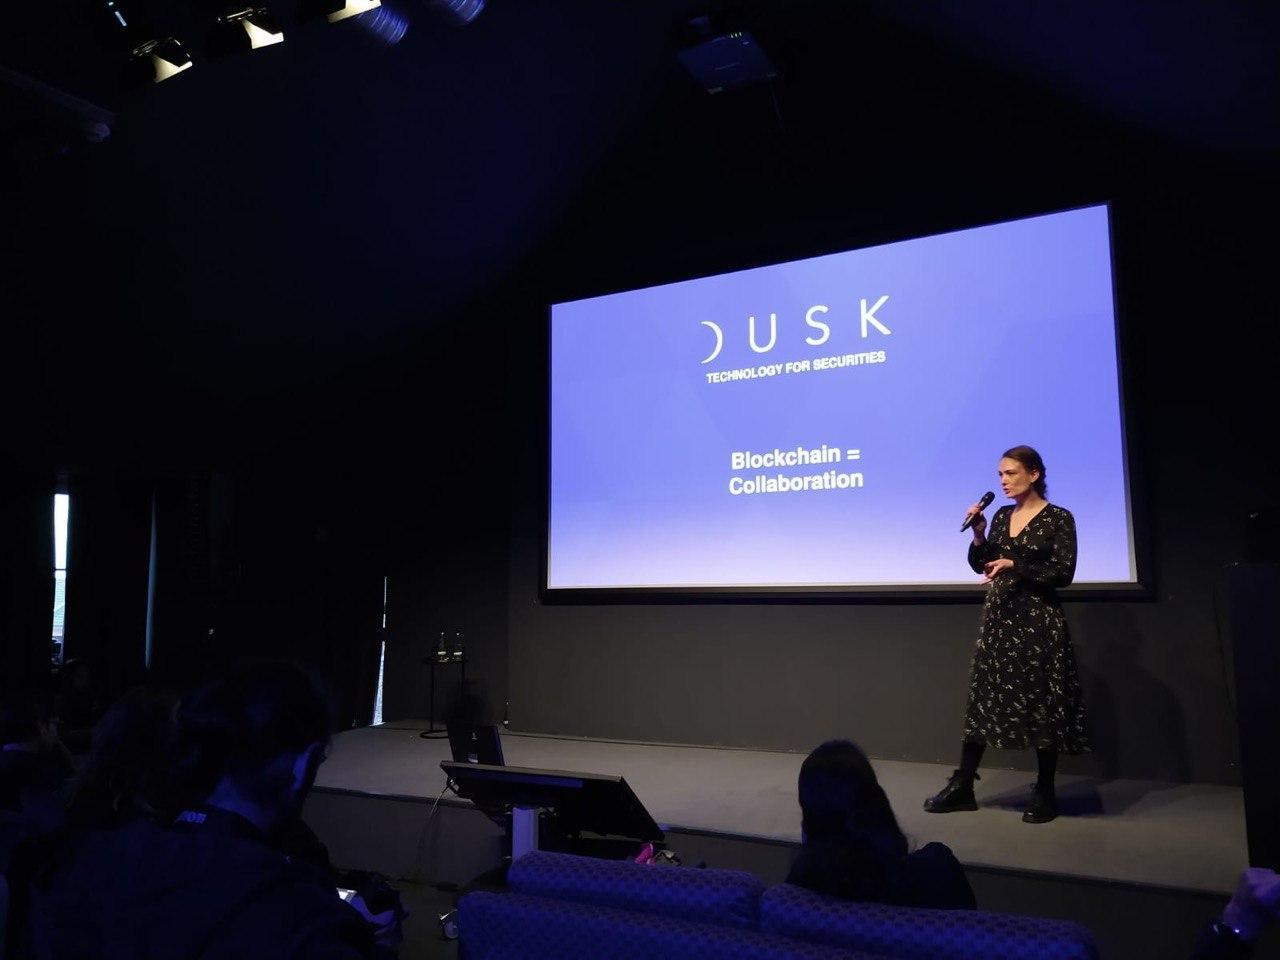 Blockchain collaboration German Blockchain - Dusk Network